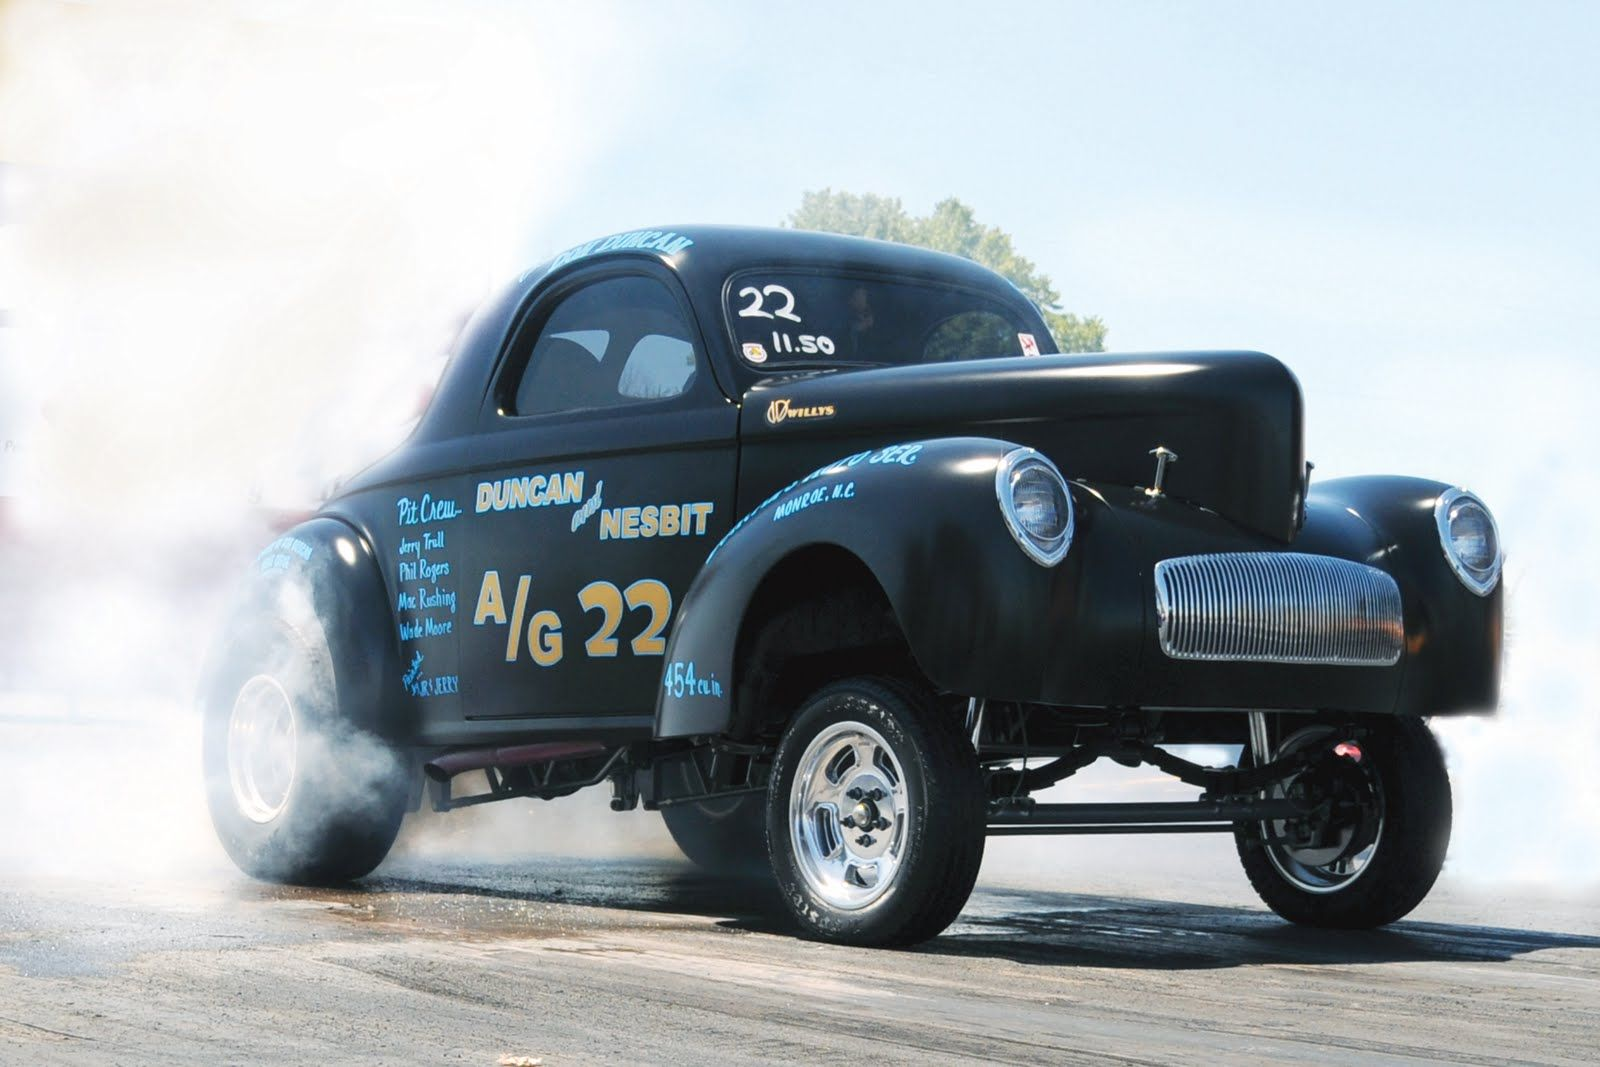 gassers Fast is fast... Gassers. Willys, Drag racing